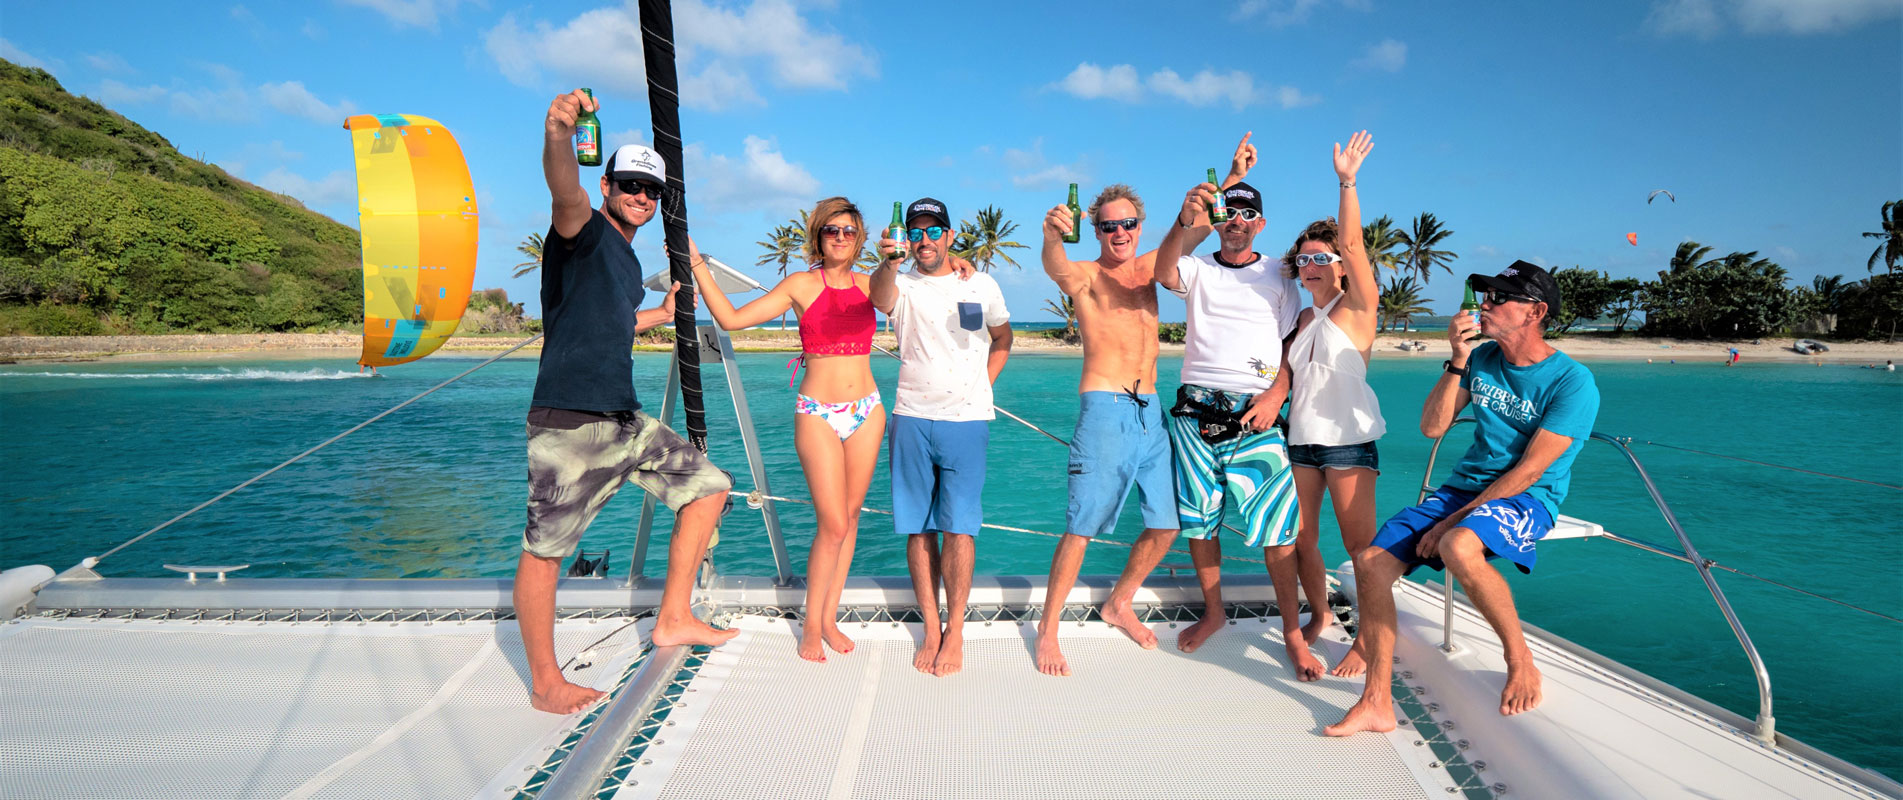 Lifestyle on a catamaran kite cruise in Mayreau kite spot